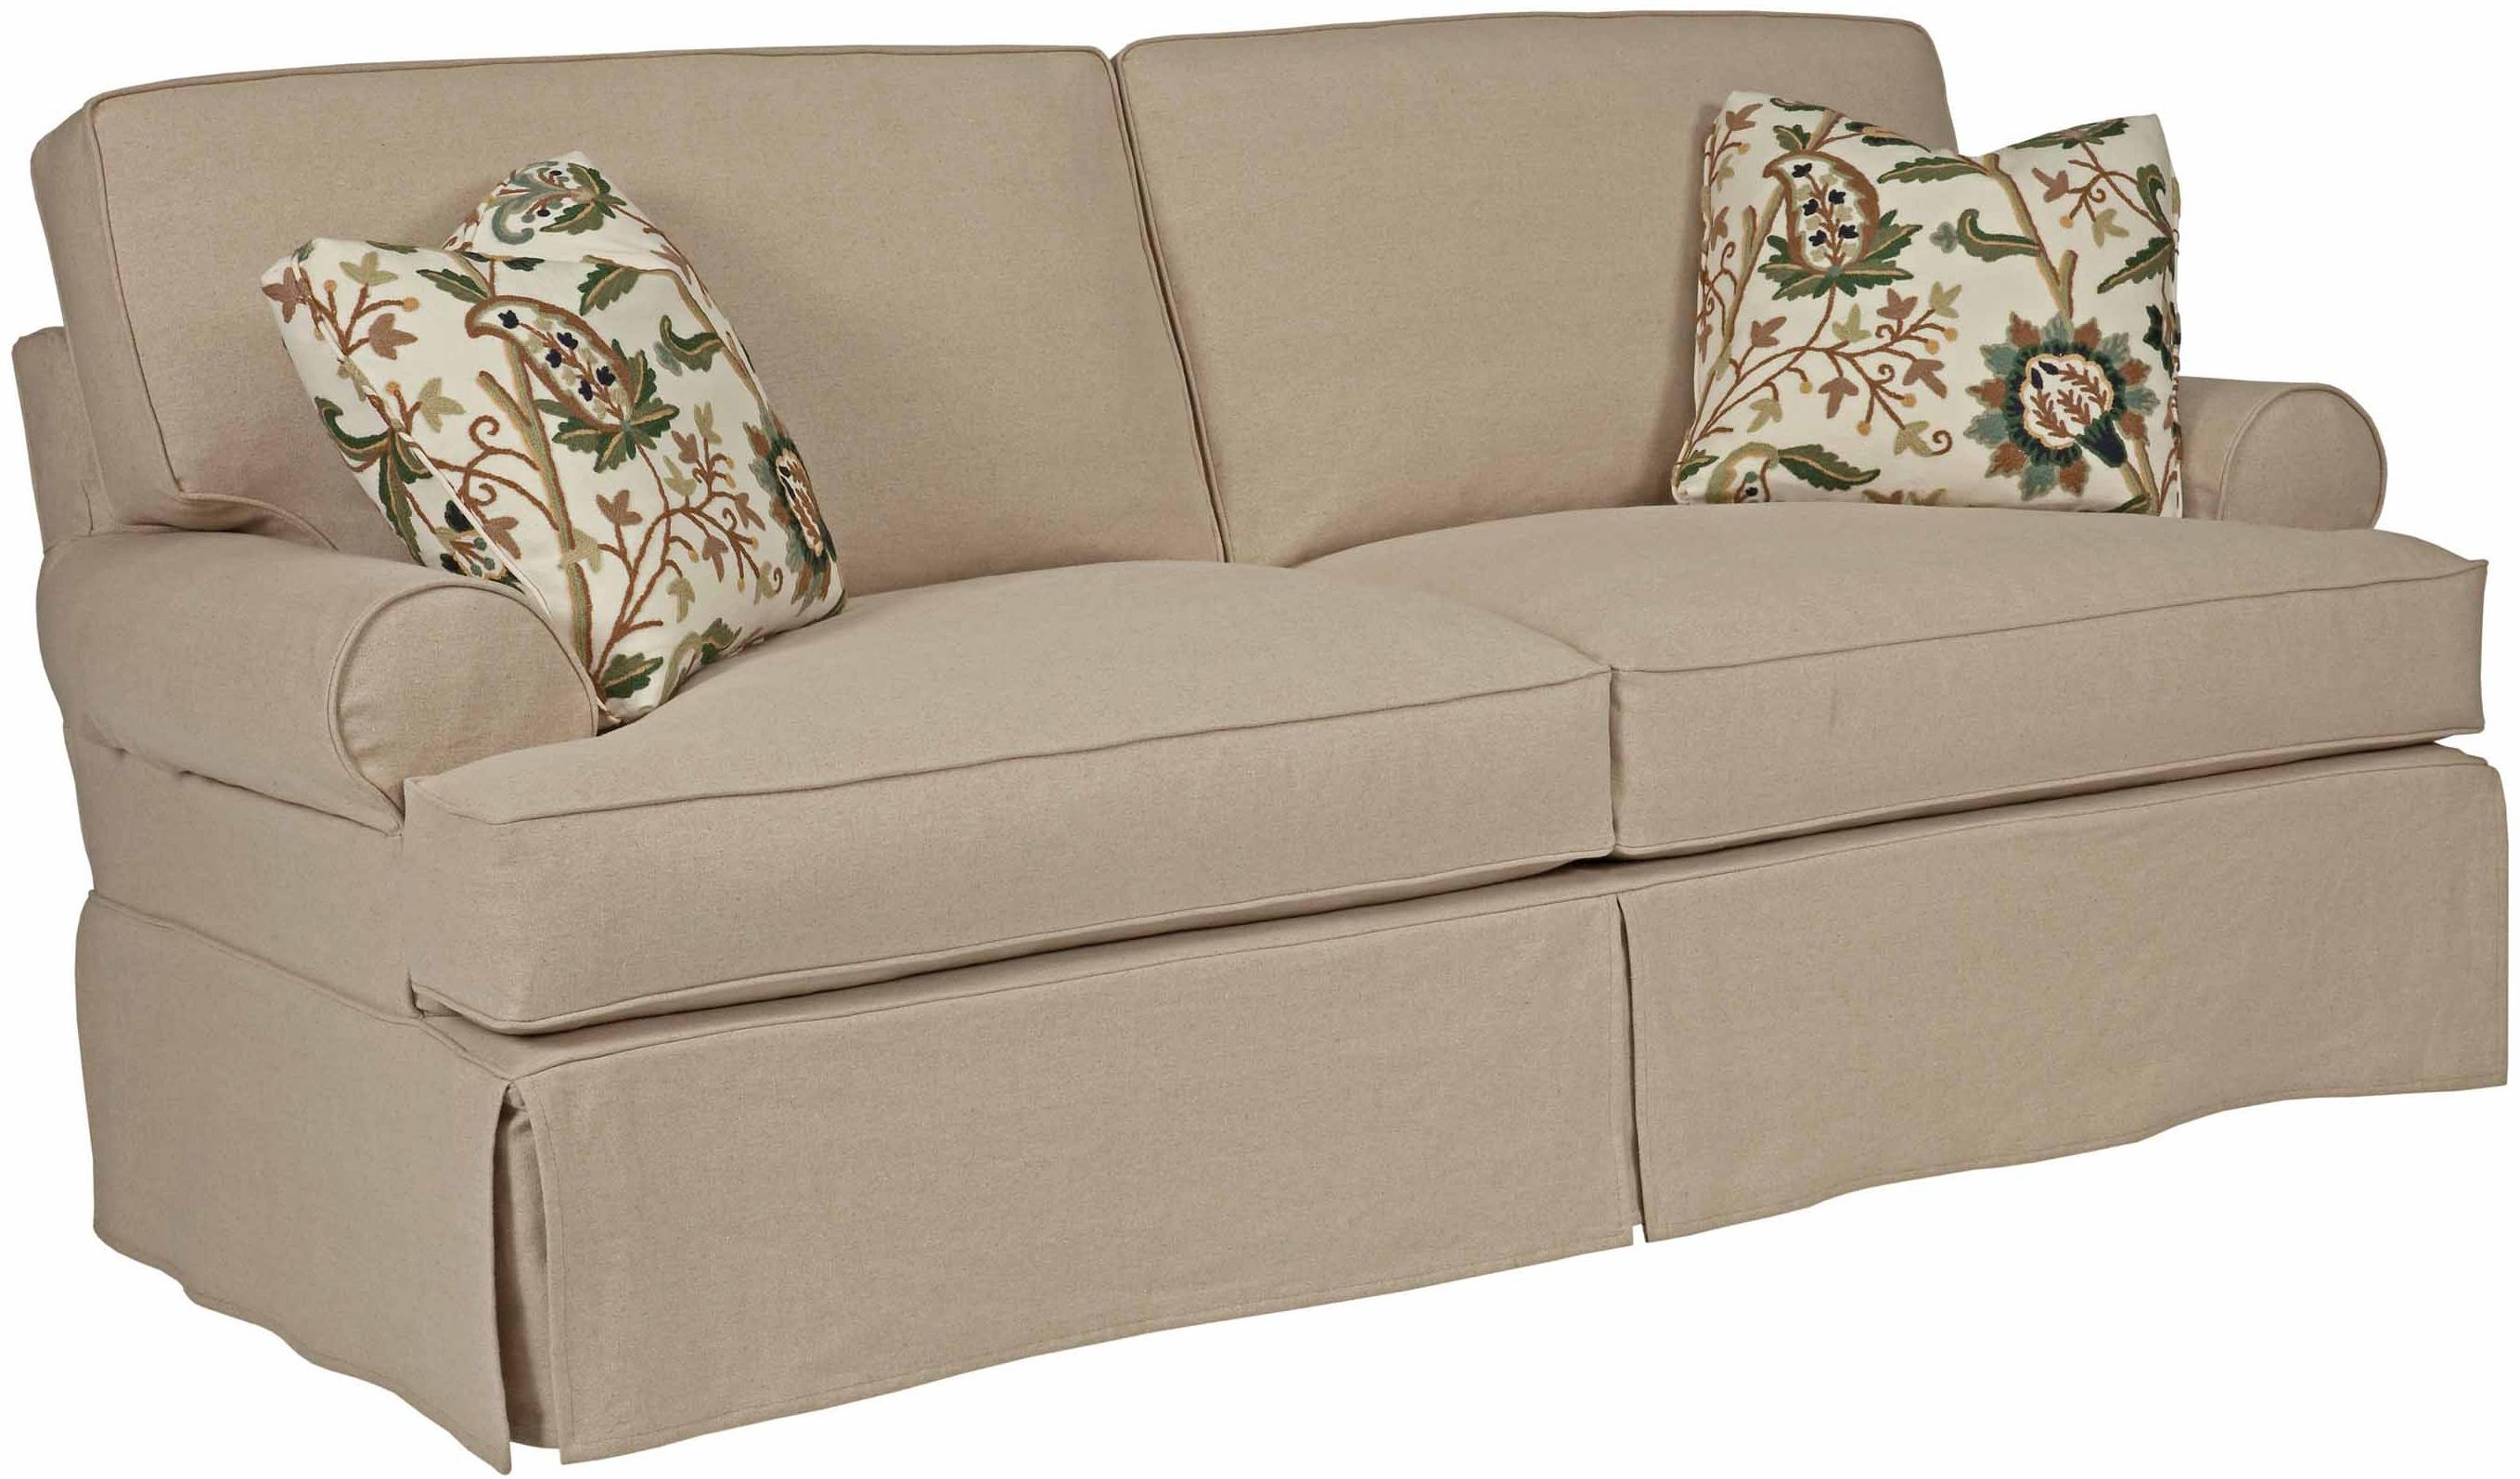 Samantha Two Seat Sofa With Slipcover Tailoring & Loose Pillow In Loose Pillow Back Sofas (Image 13 of 20)